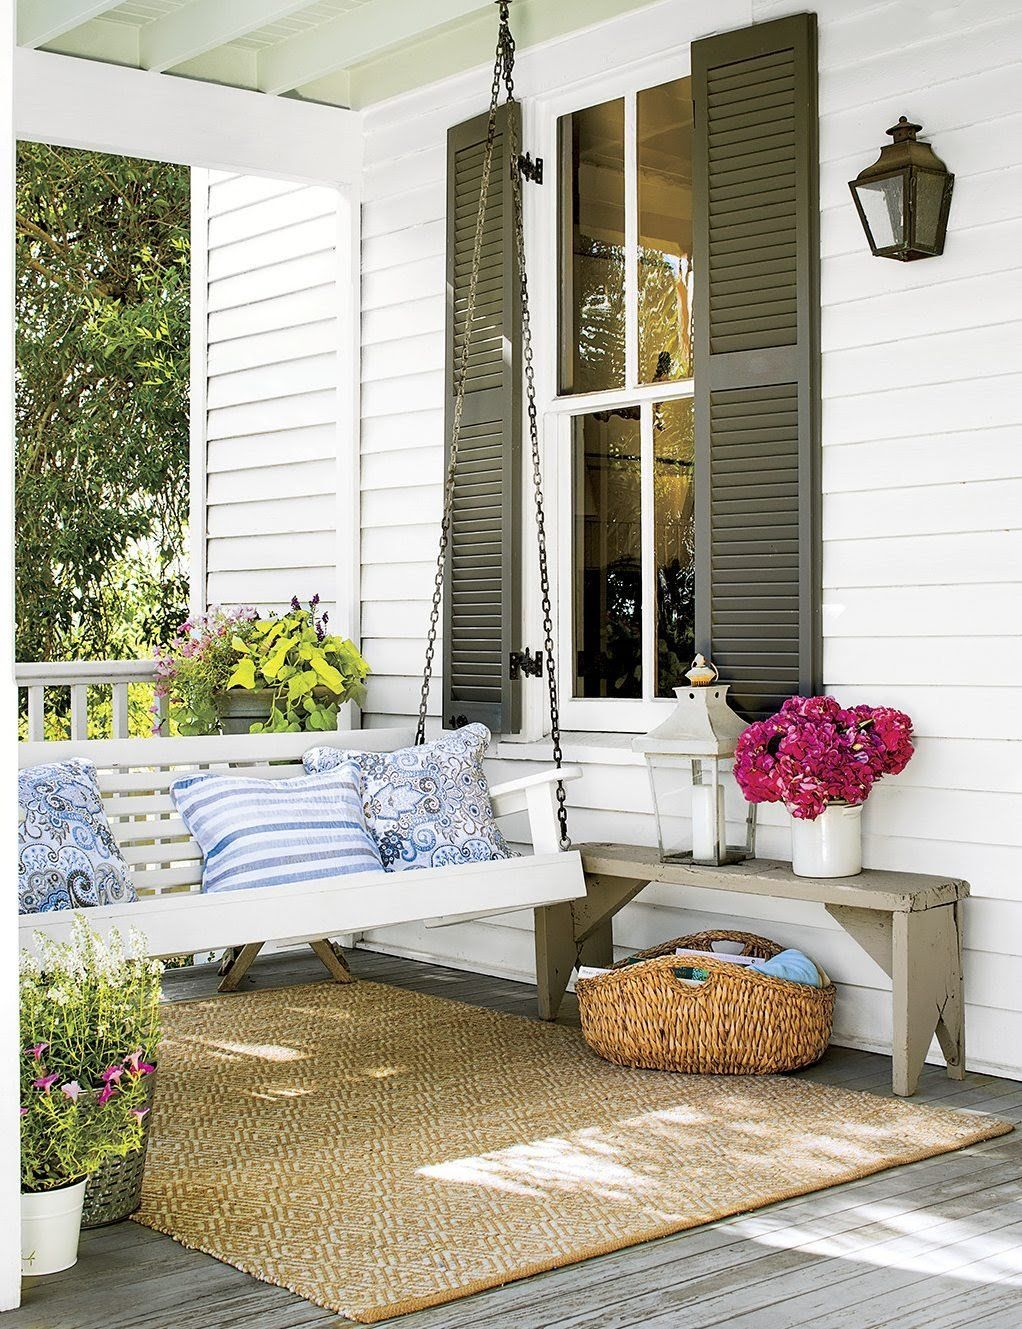 19 marvelous porch swing designs for spring enjoyment on porch swing ideas inspiration id=37269